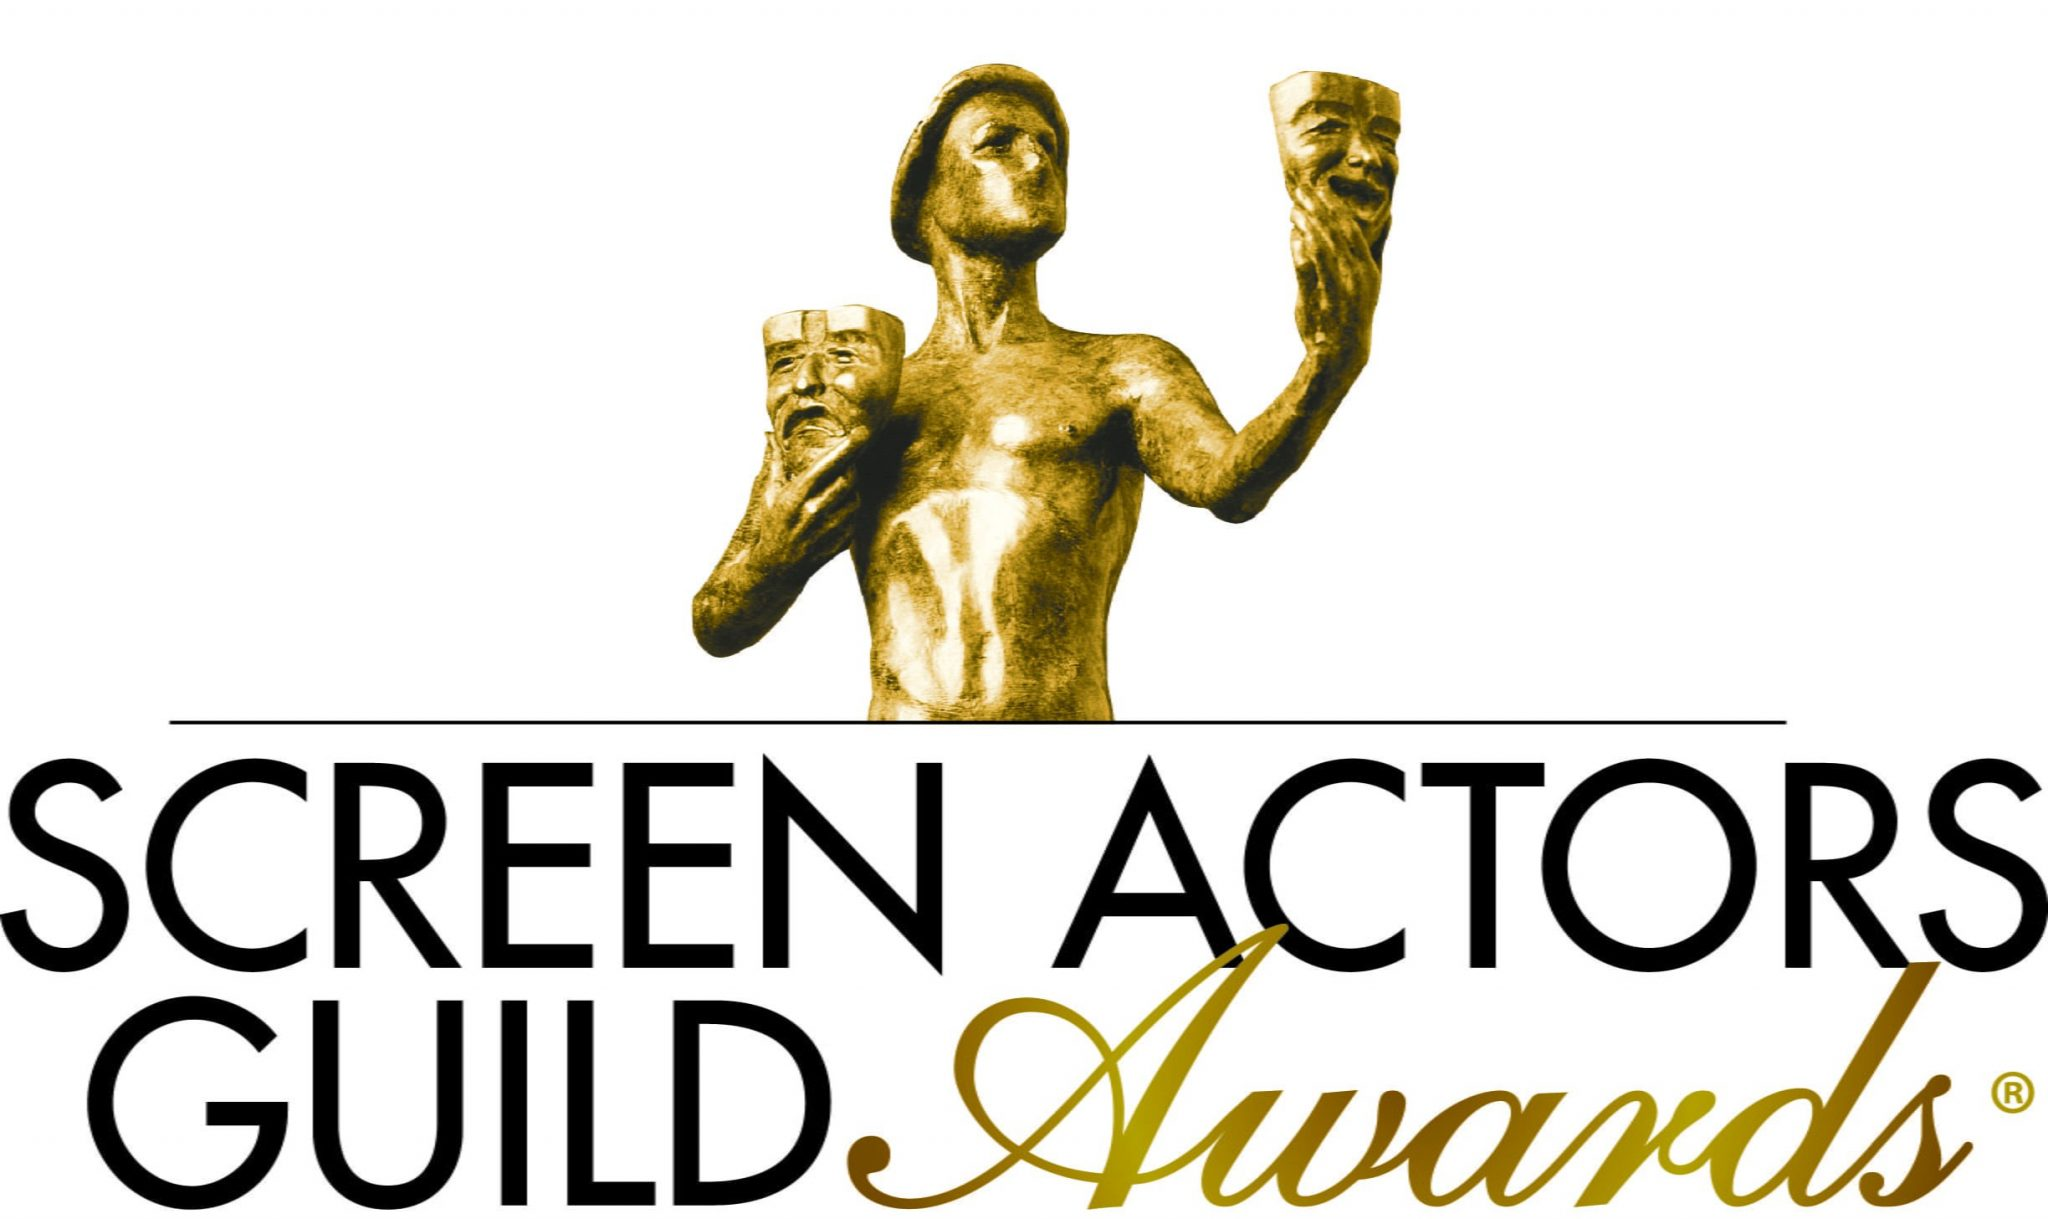 SAG Award winners and pictures!